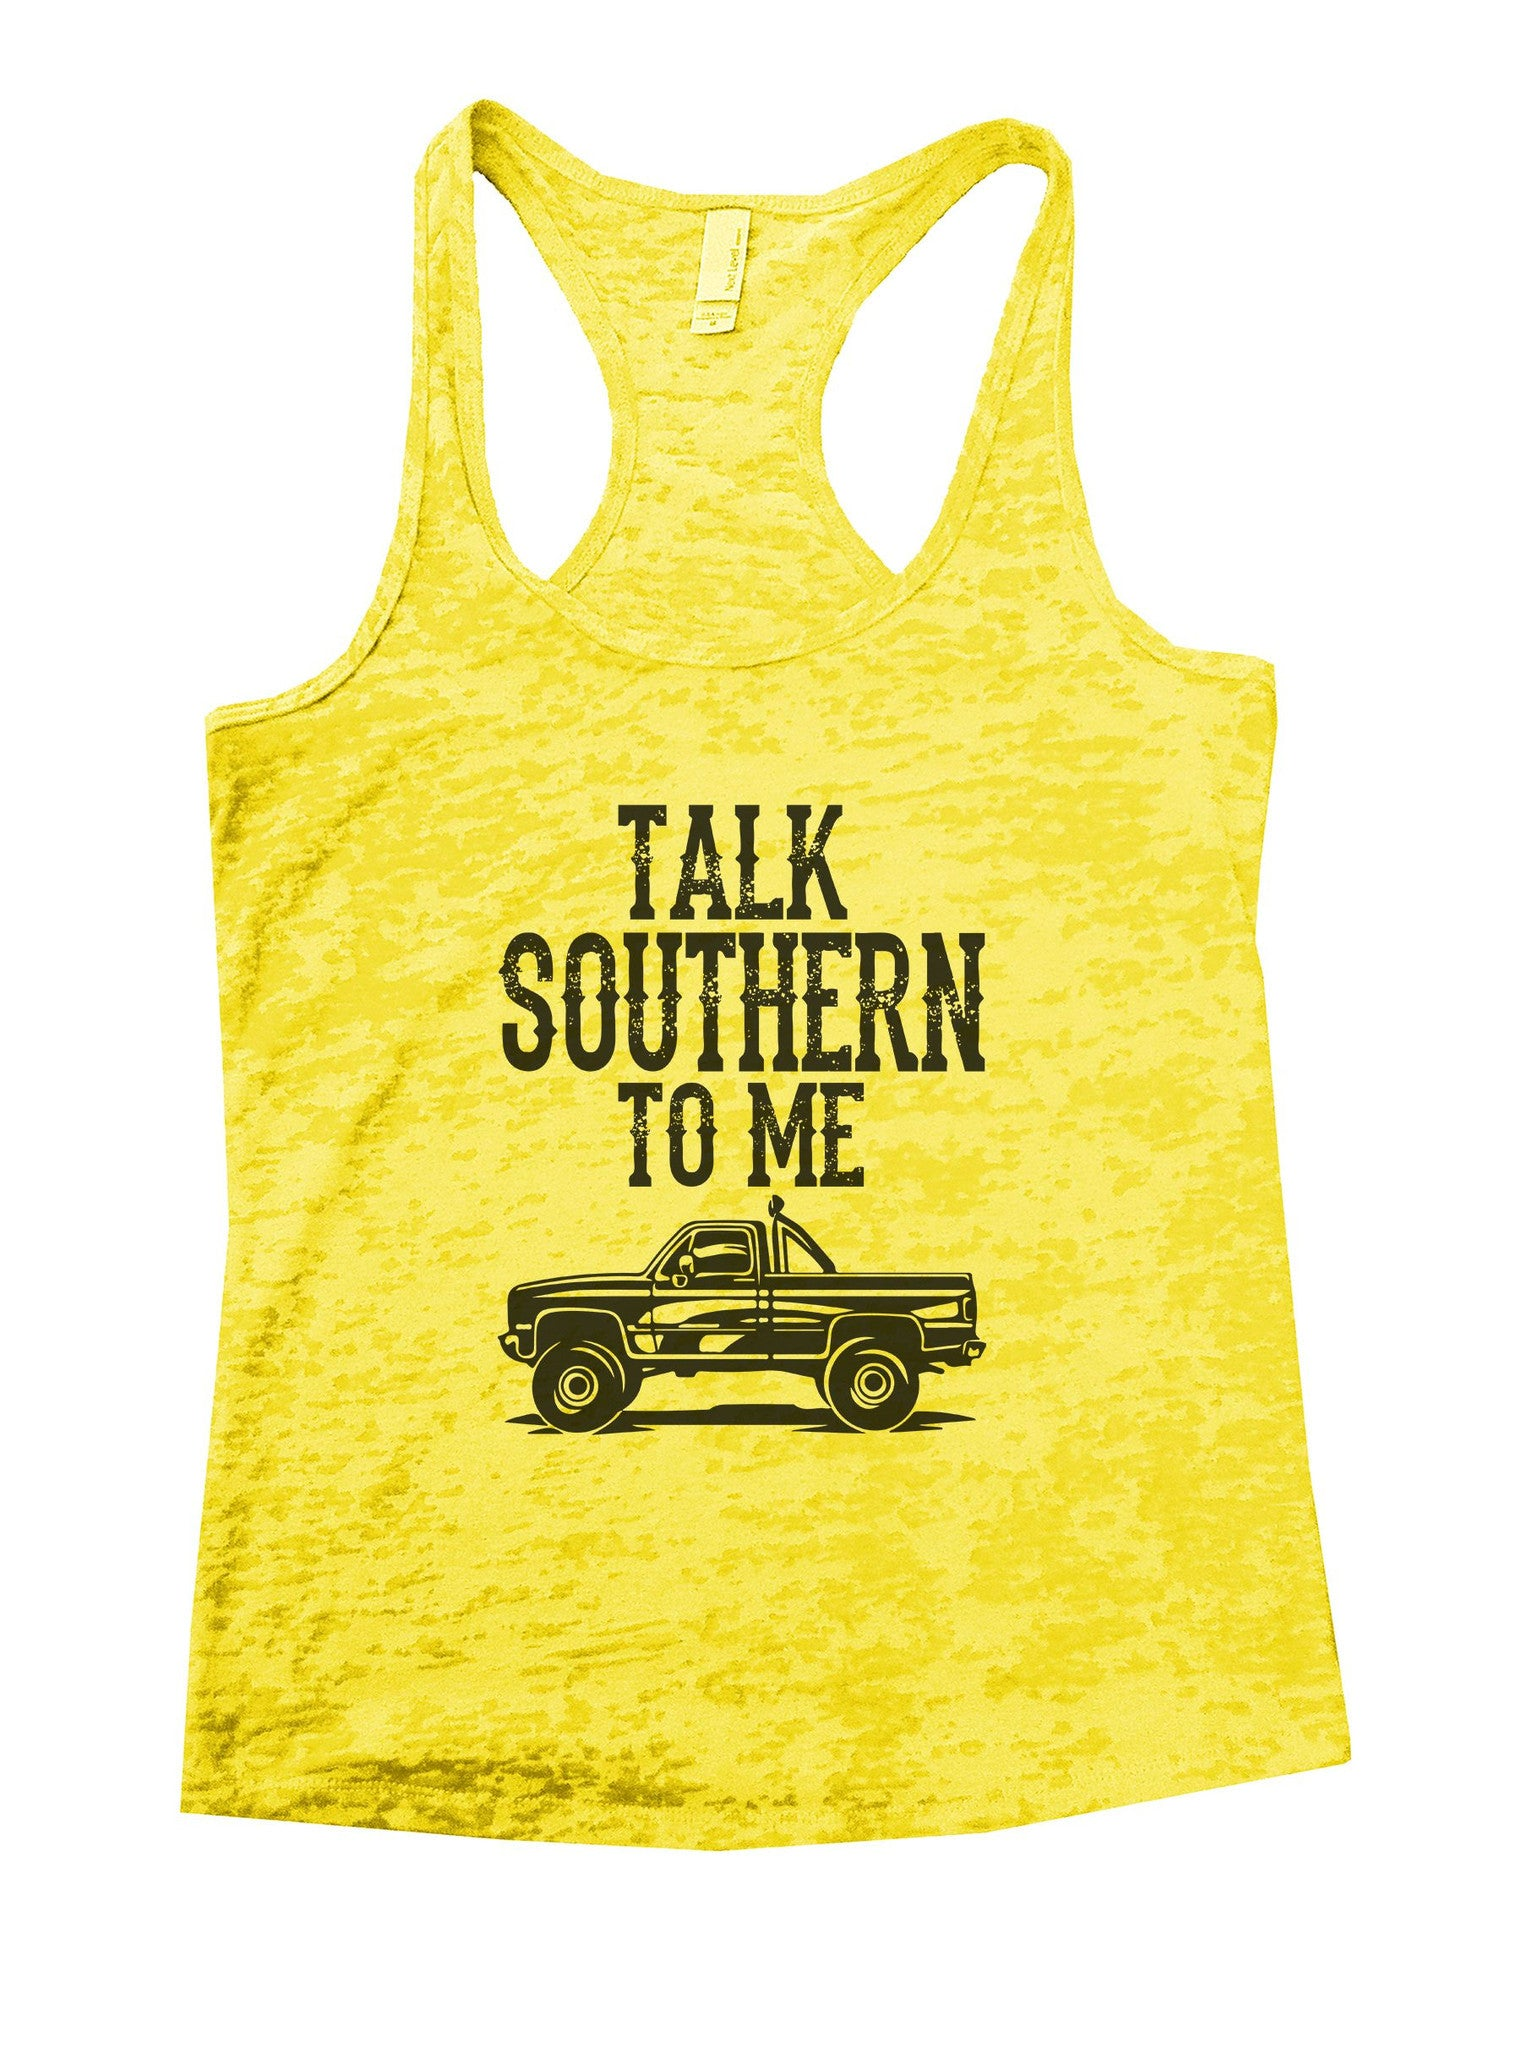 Talk Southern To Me Burnout Tank Top By BurnoutTankTops.com - 1010 - Funny Shirts Tank Tops Burnouts and Triblends  - 7